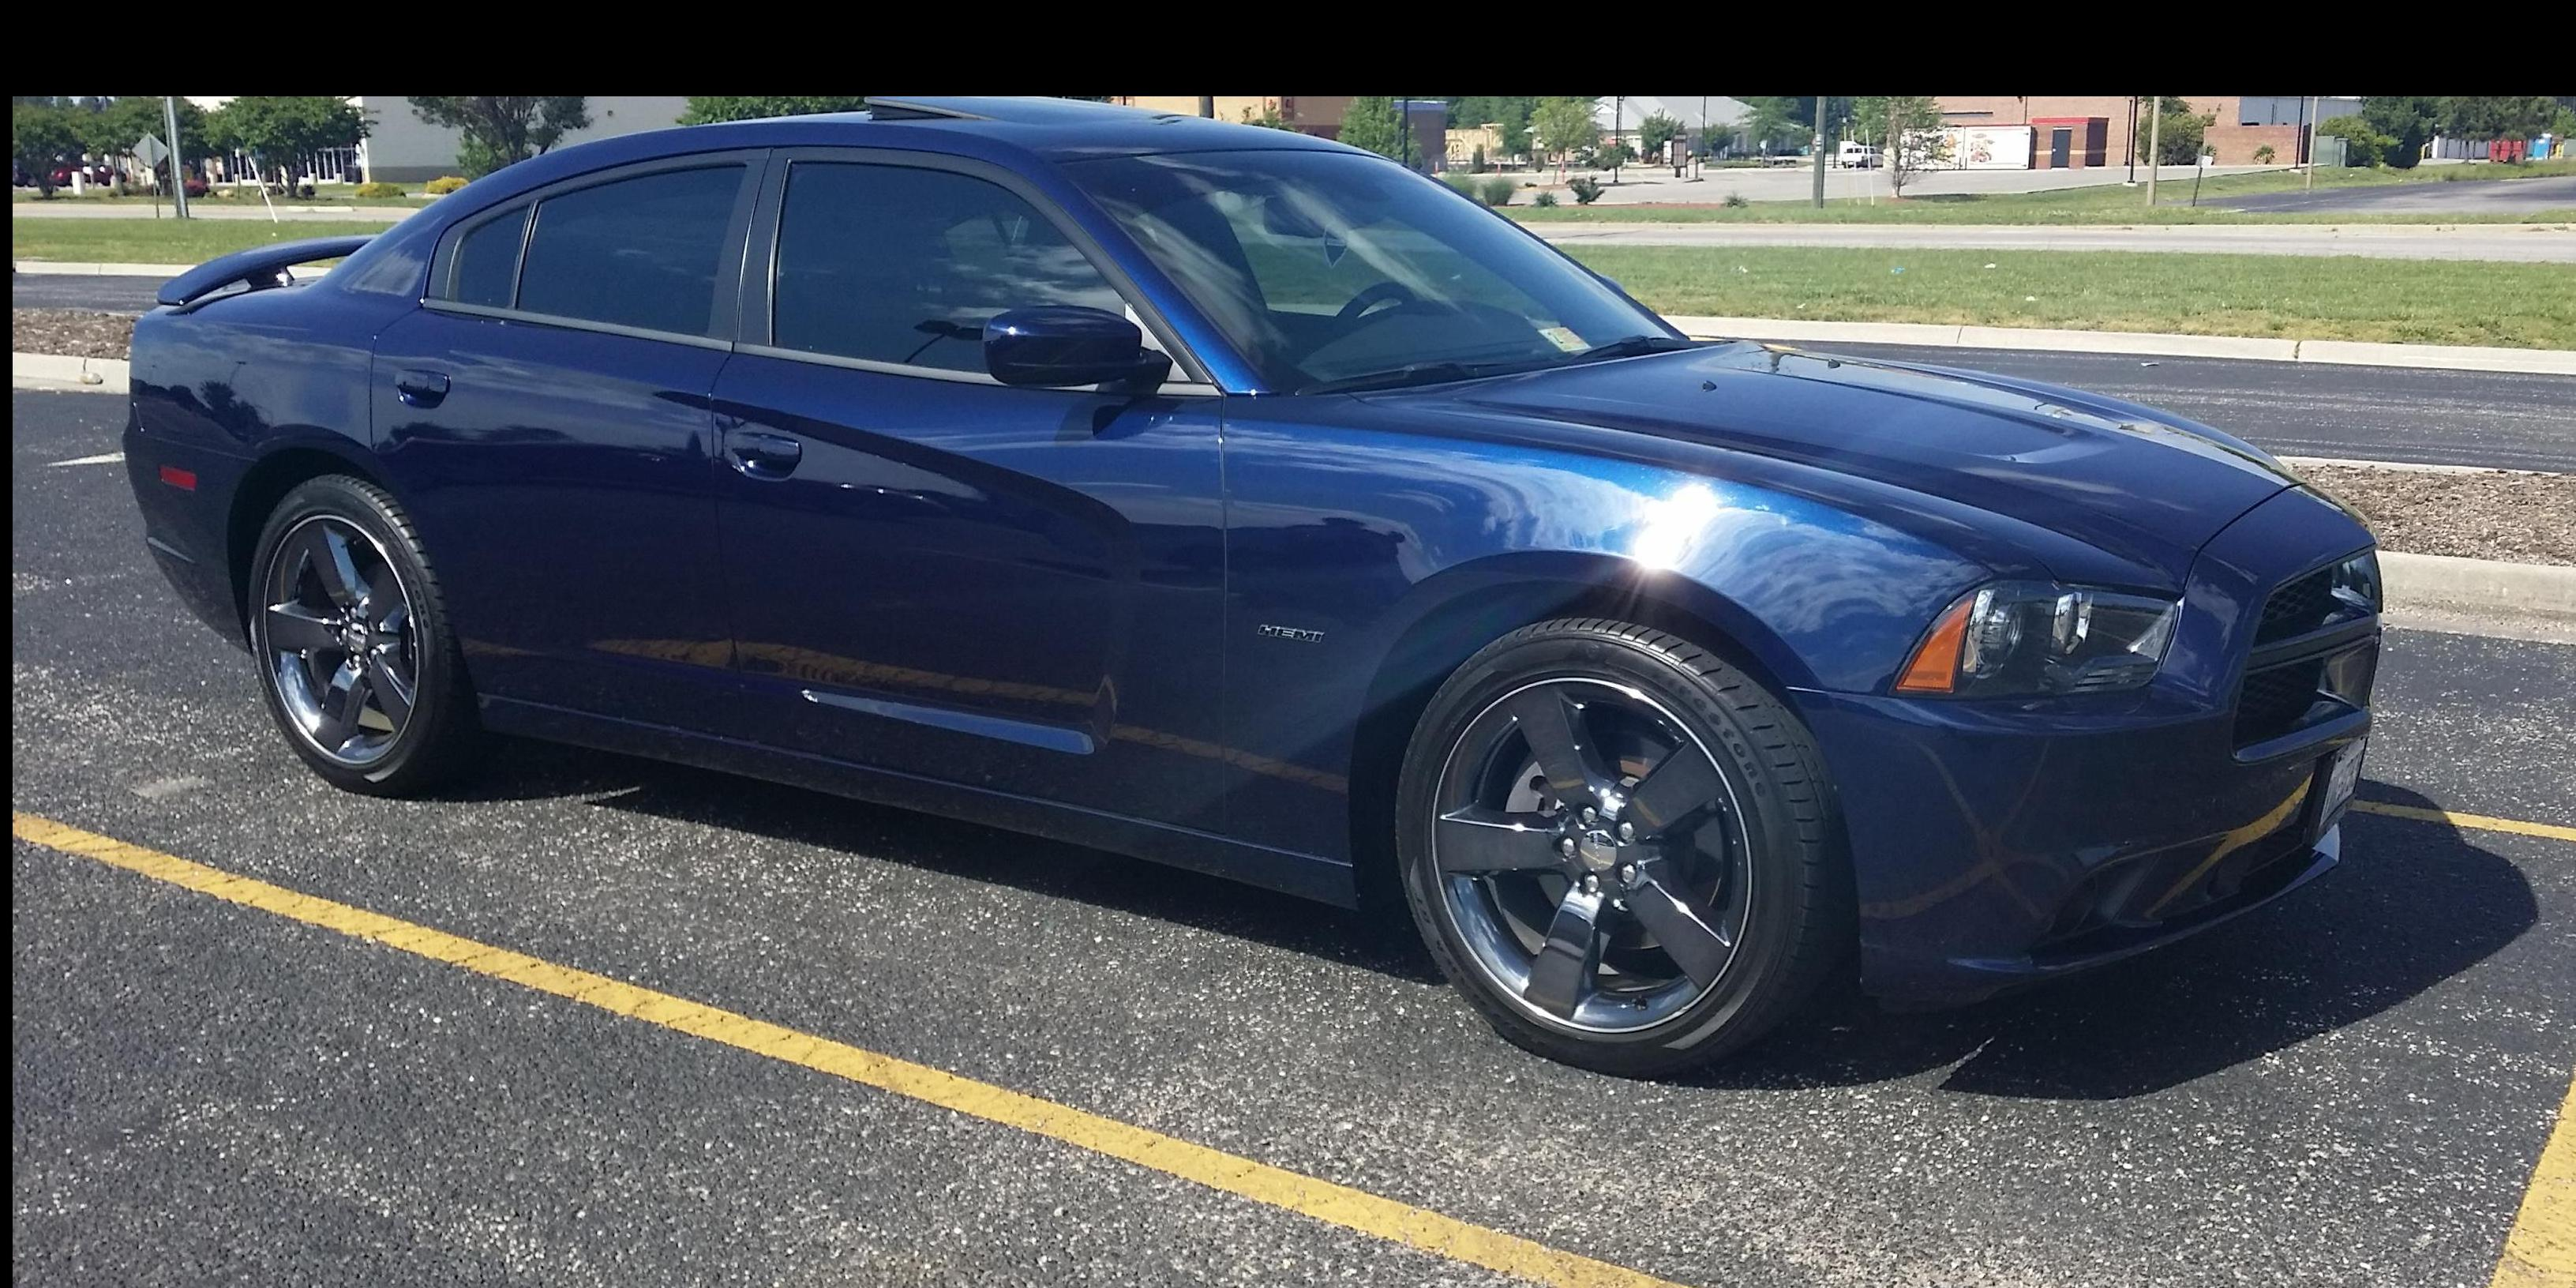 2k13Charger's 2013 Dodge Charger